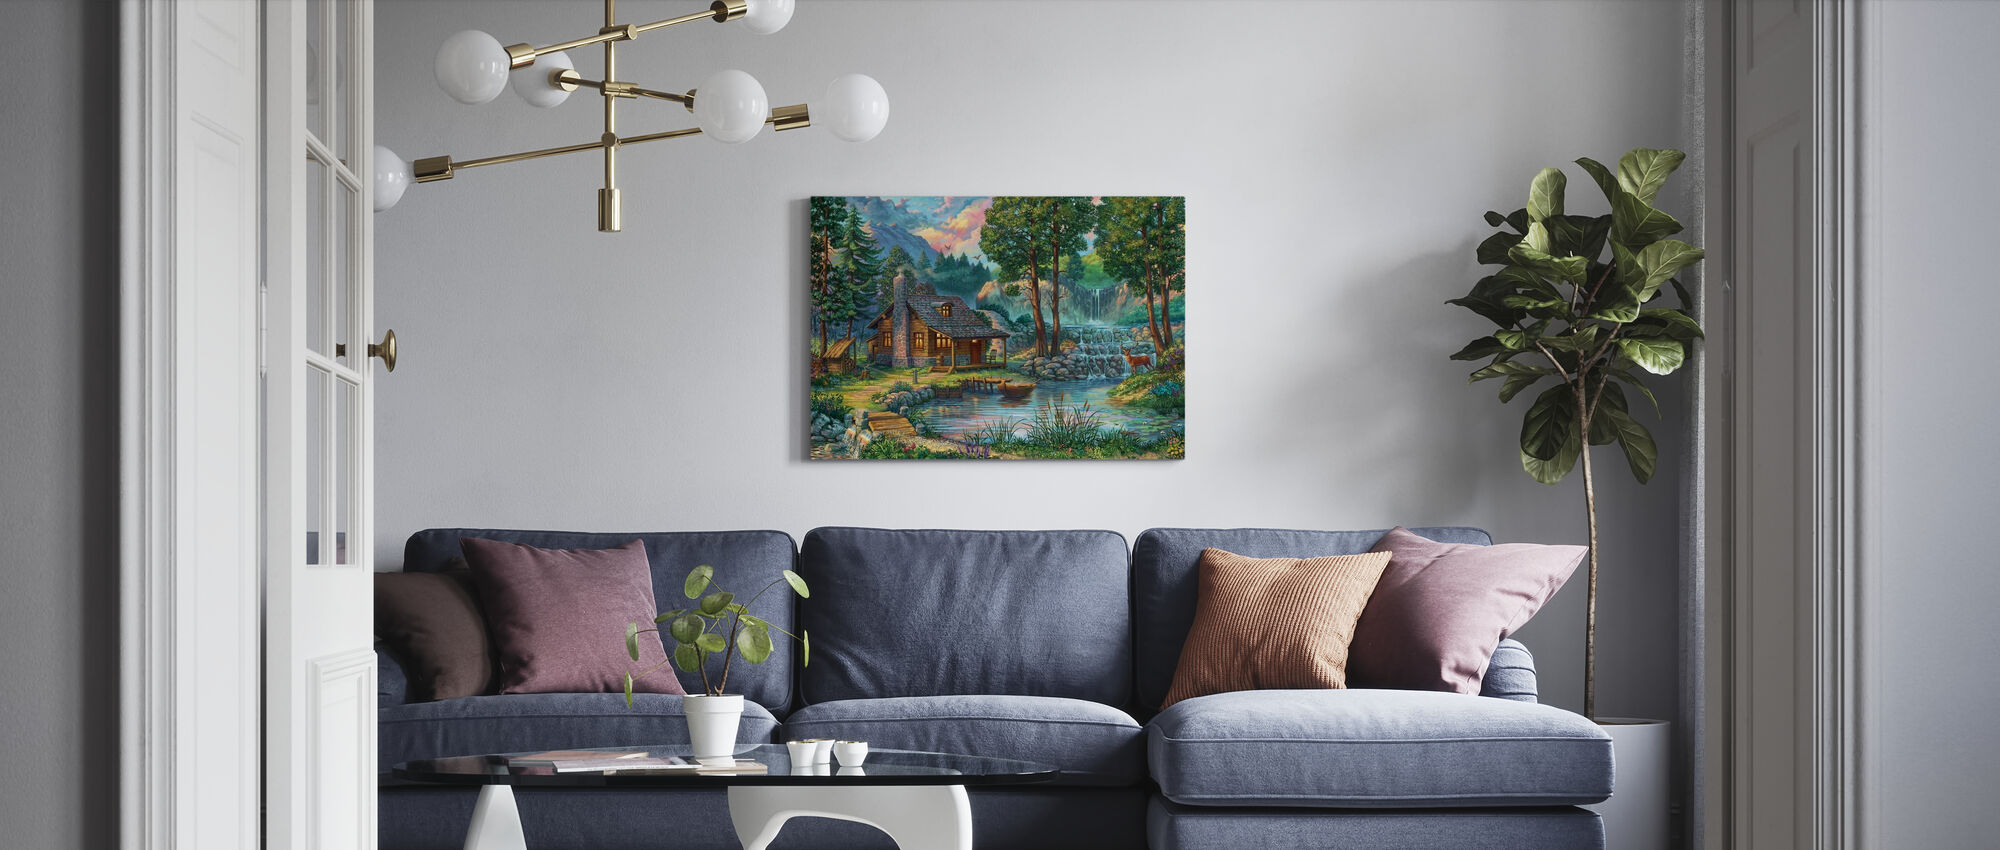 Country House by The Lake - Canvas print - Living Room